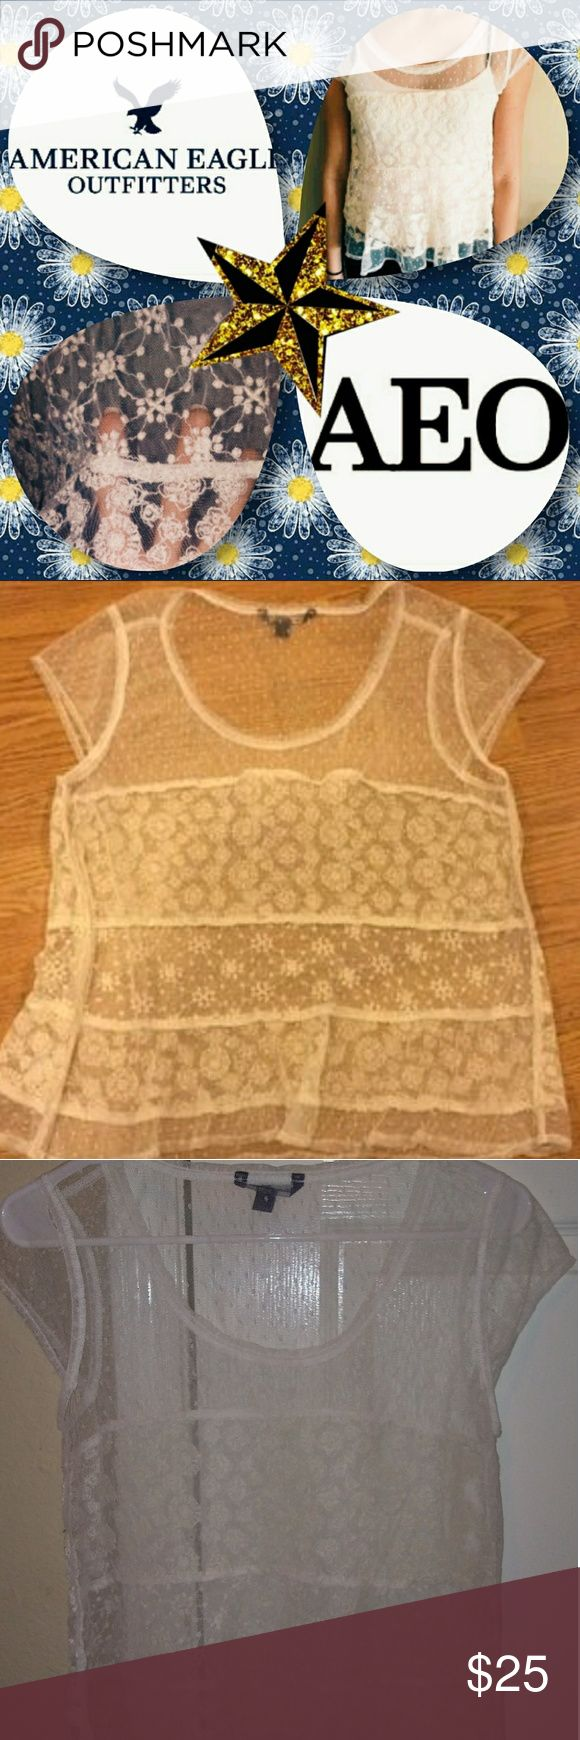 SALE!!American Eagle Outfitters Lace Top See through lace American Eagle top. T shirt style. Lace material. Sticted patterns. Frilly lace bottom hem. Light weight. No stains. Worn a few times. Size small. Perfect for the summer! American Eagle Outfitters Tops